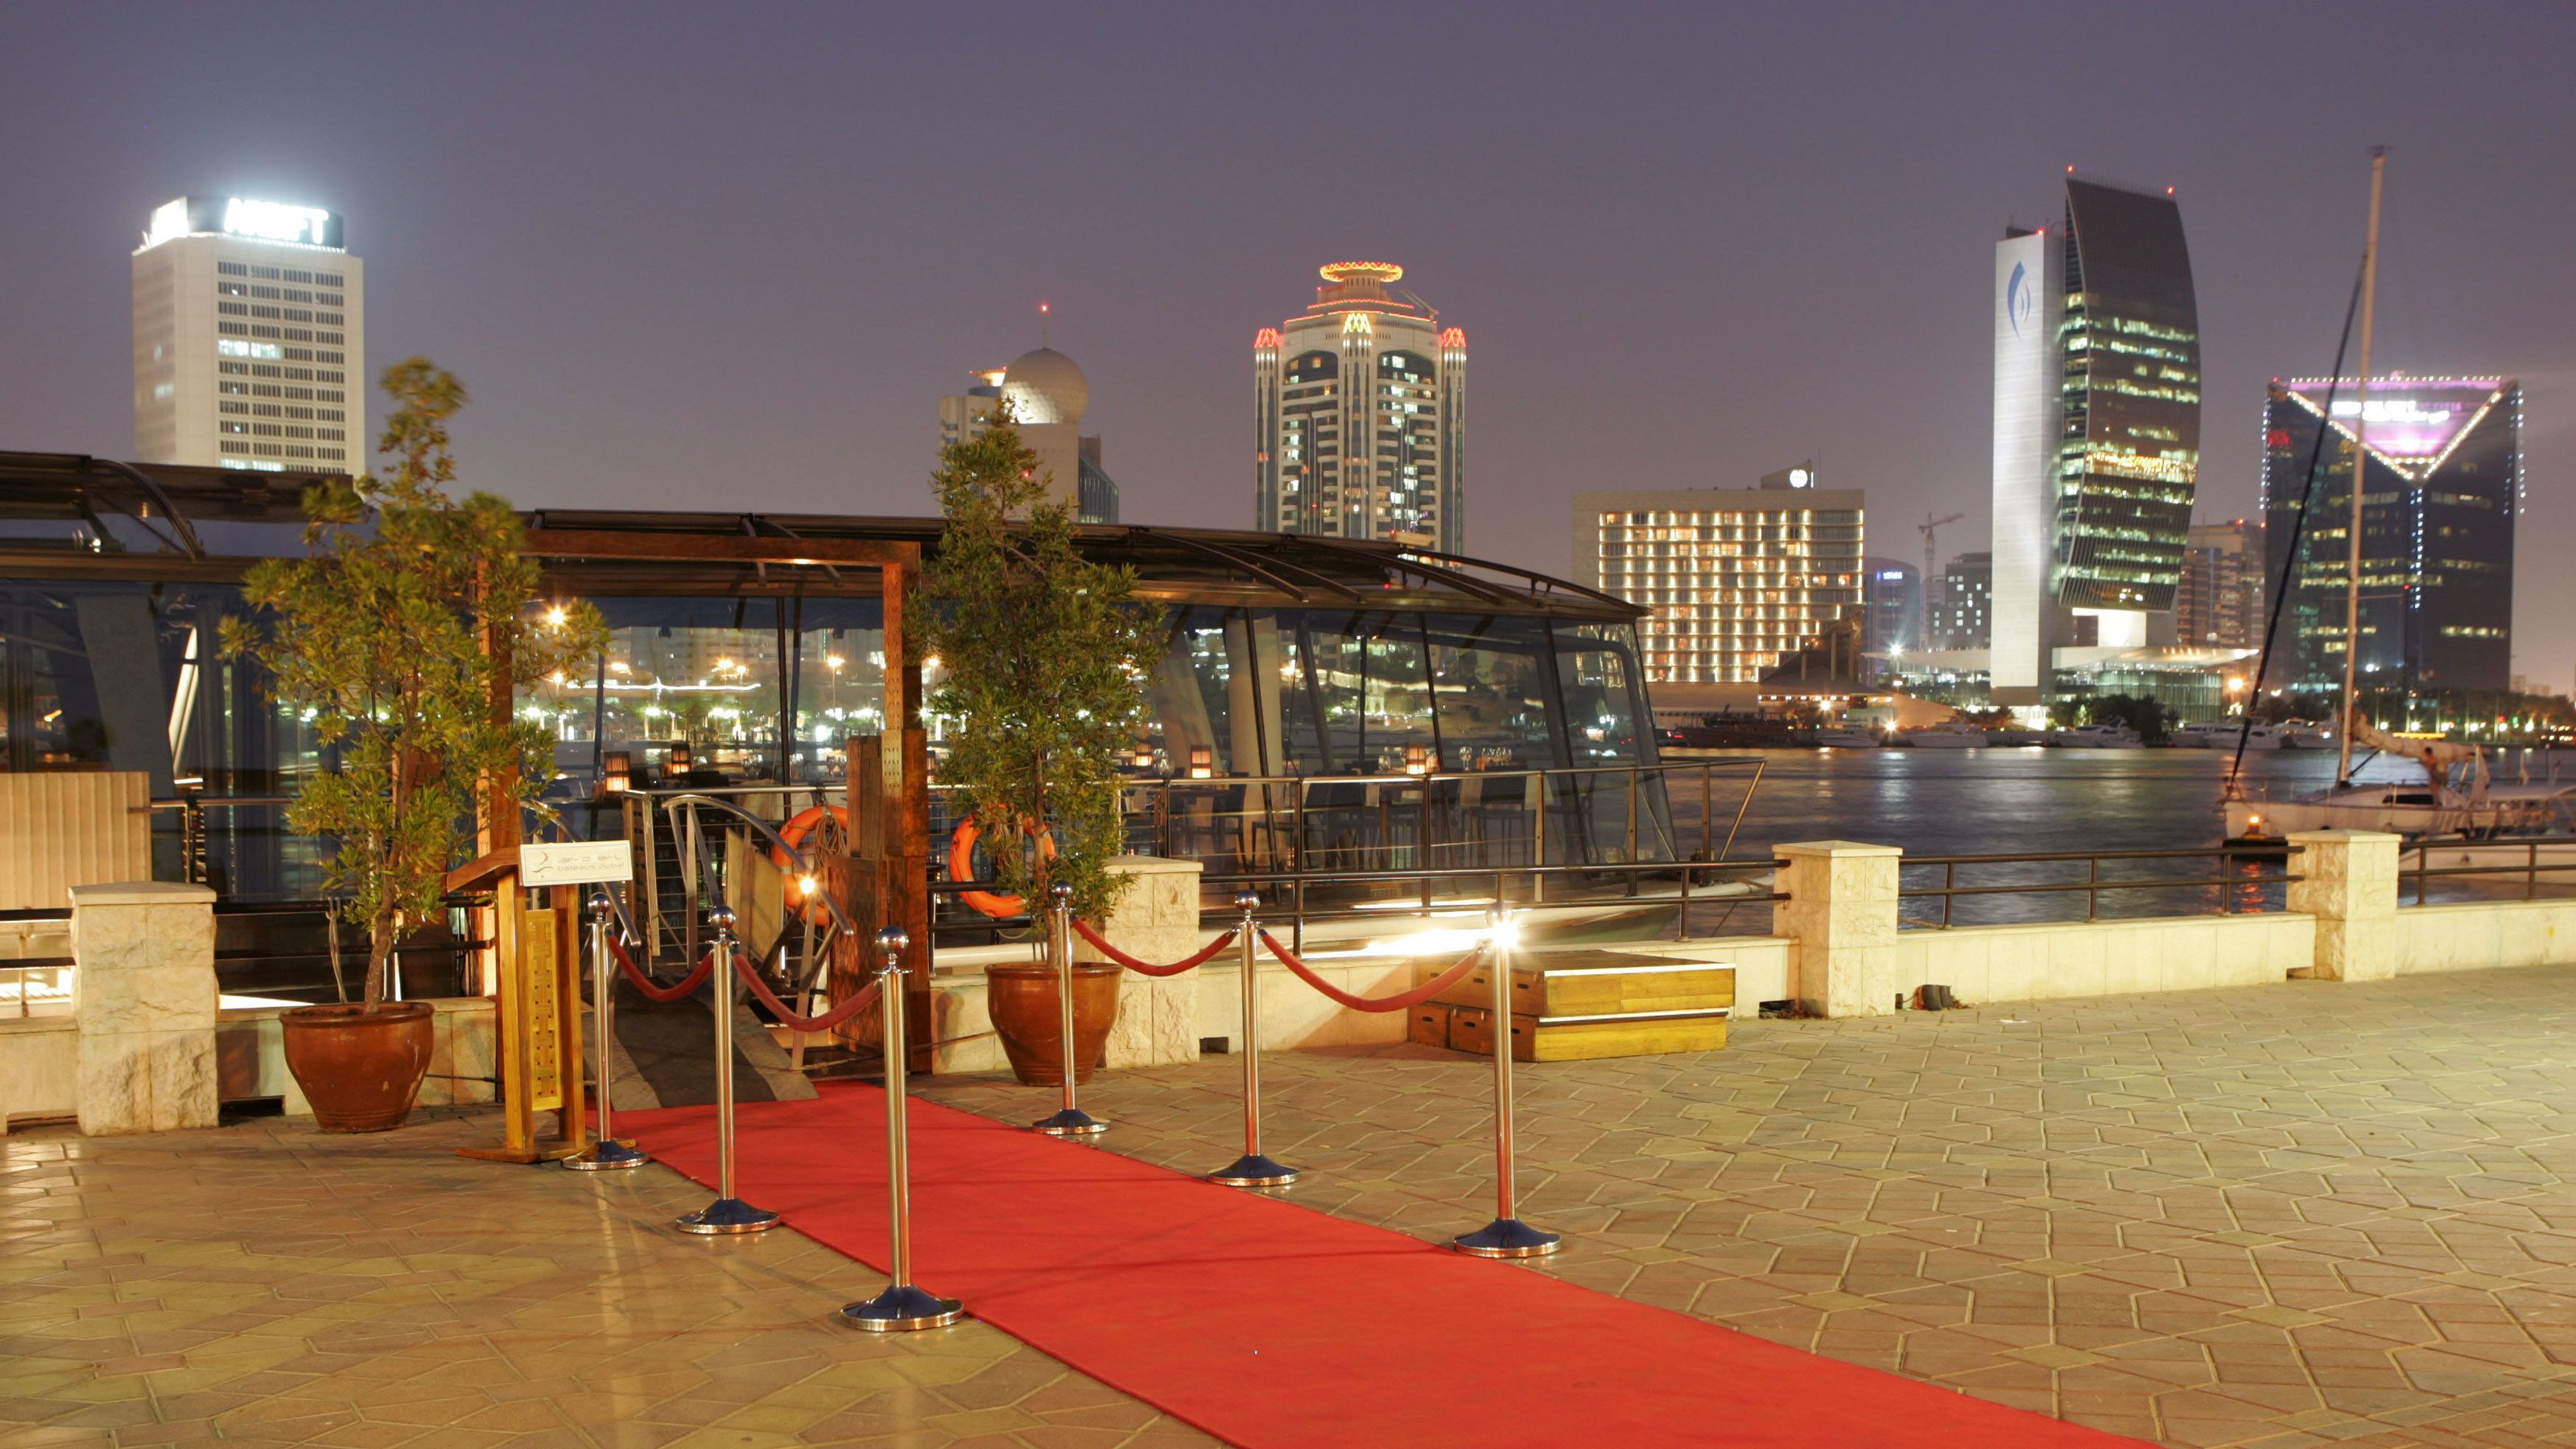 red carpet leading to tour boat in Dubai